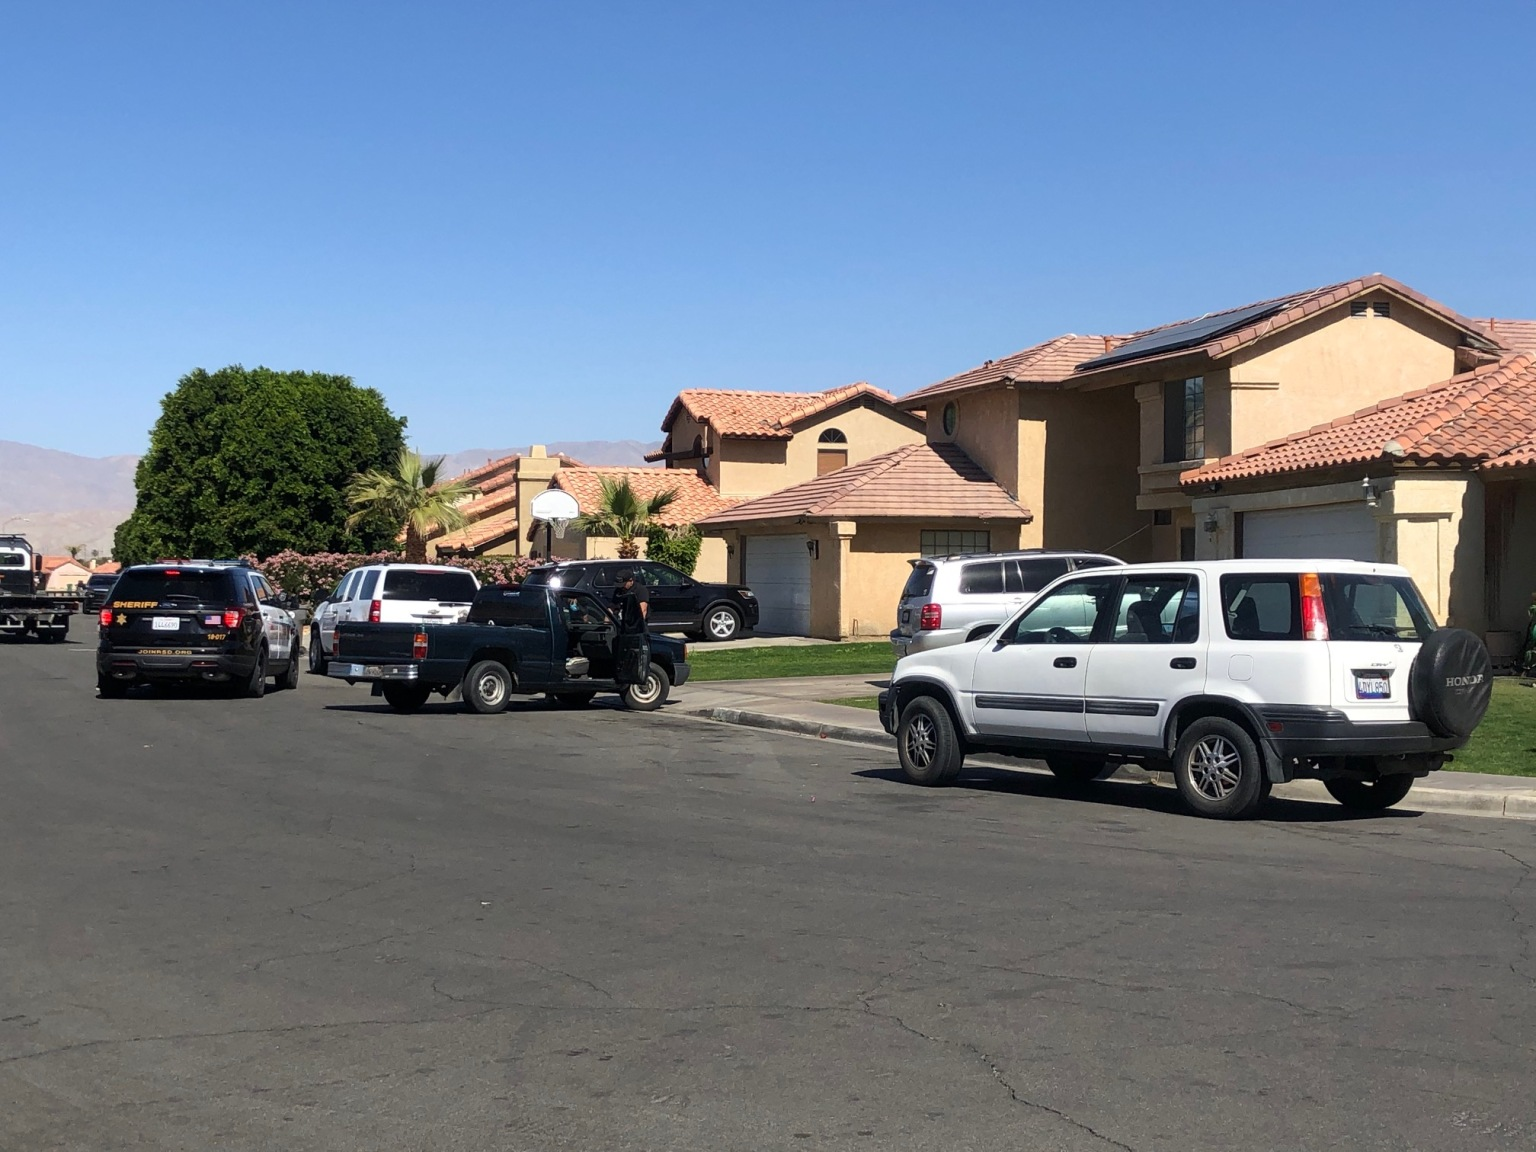 Suspect in custody following pursuit, search in Indio community